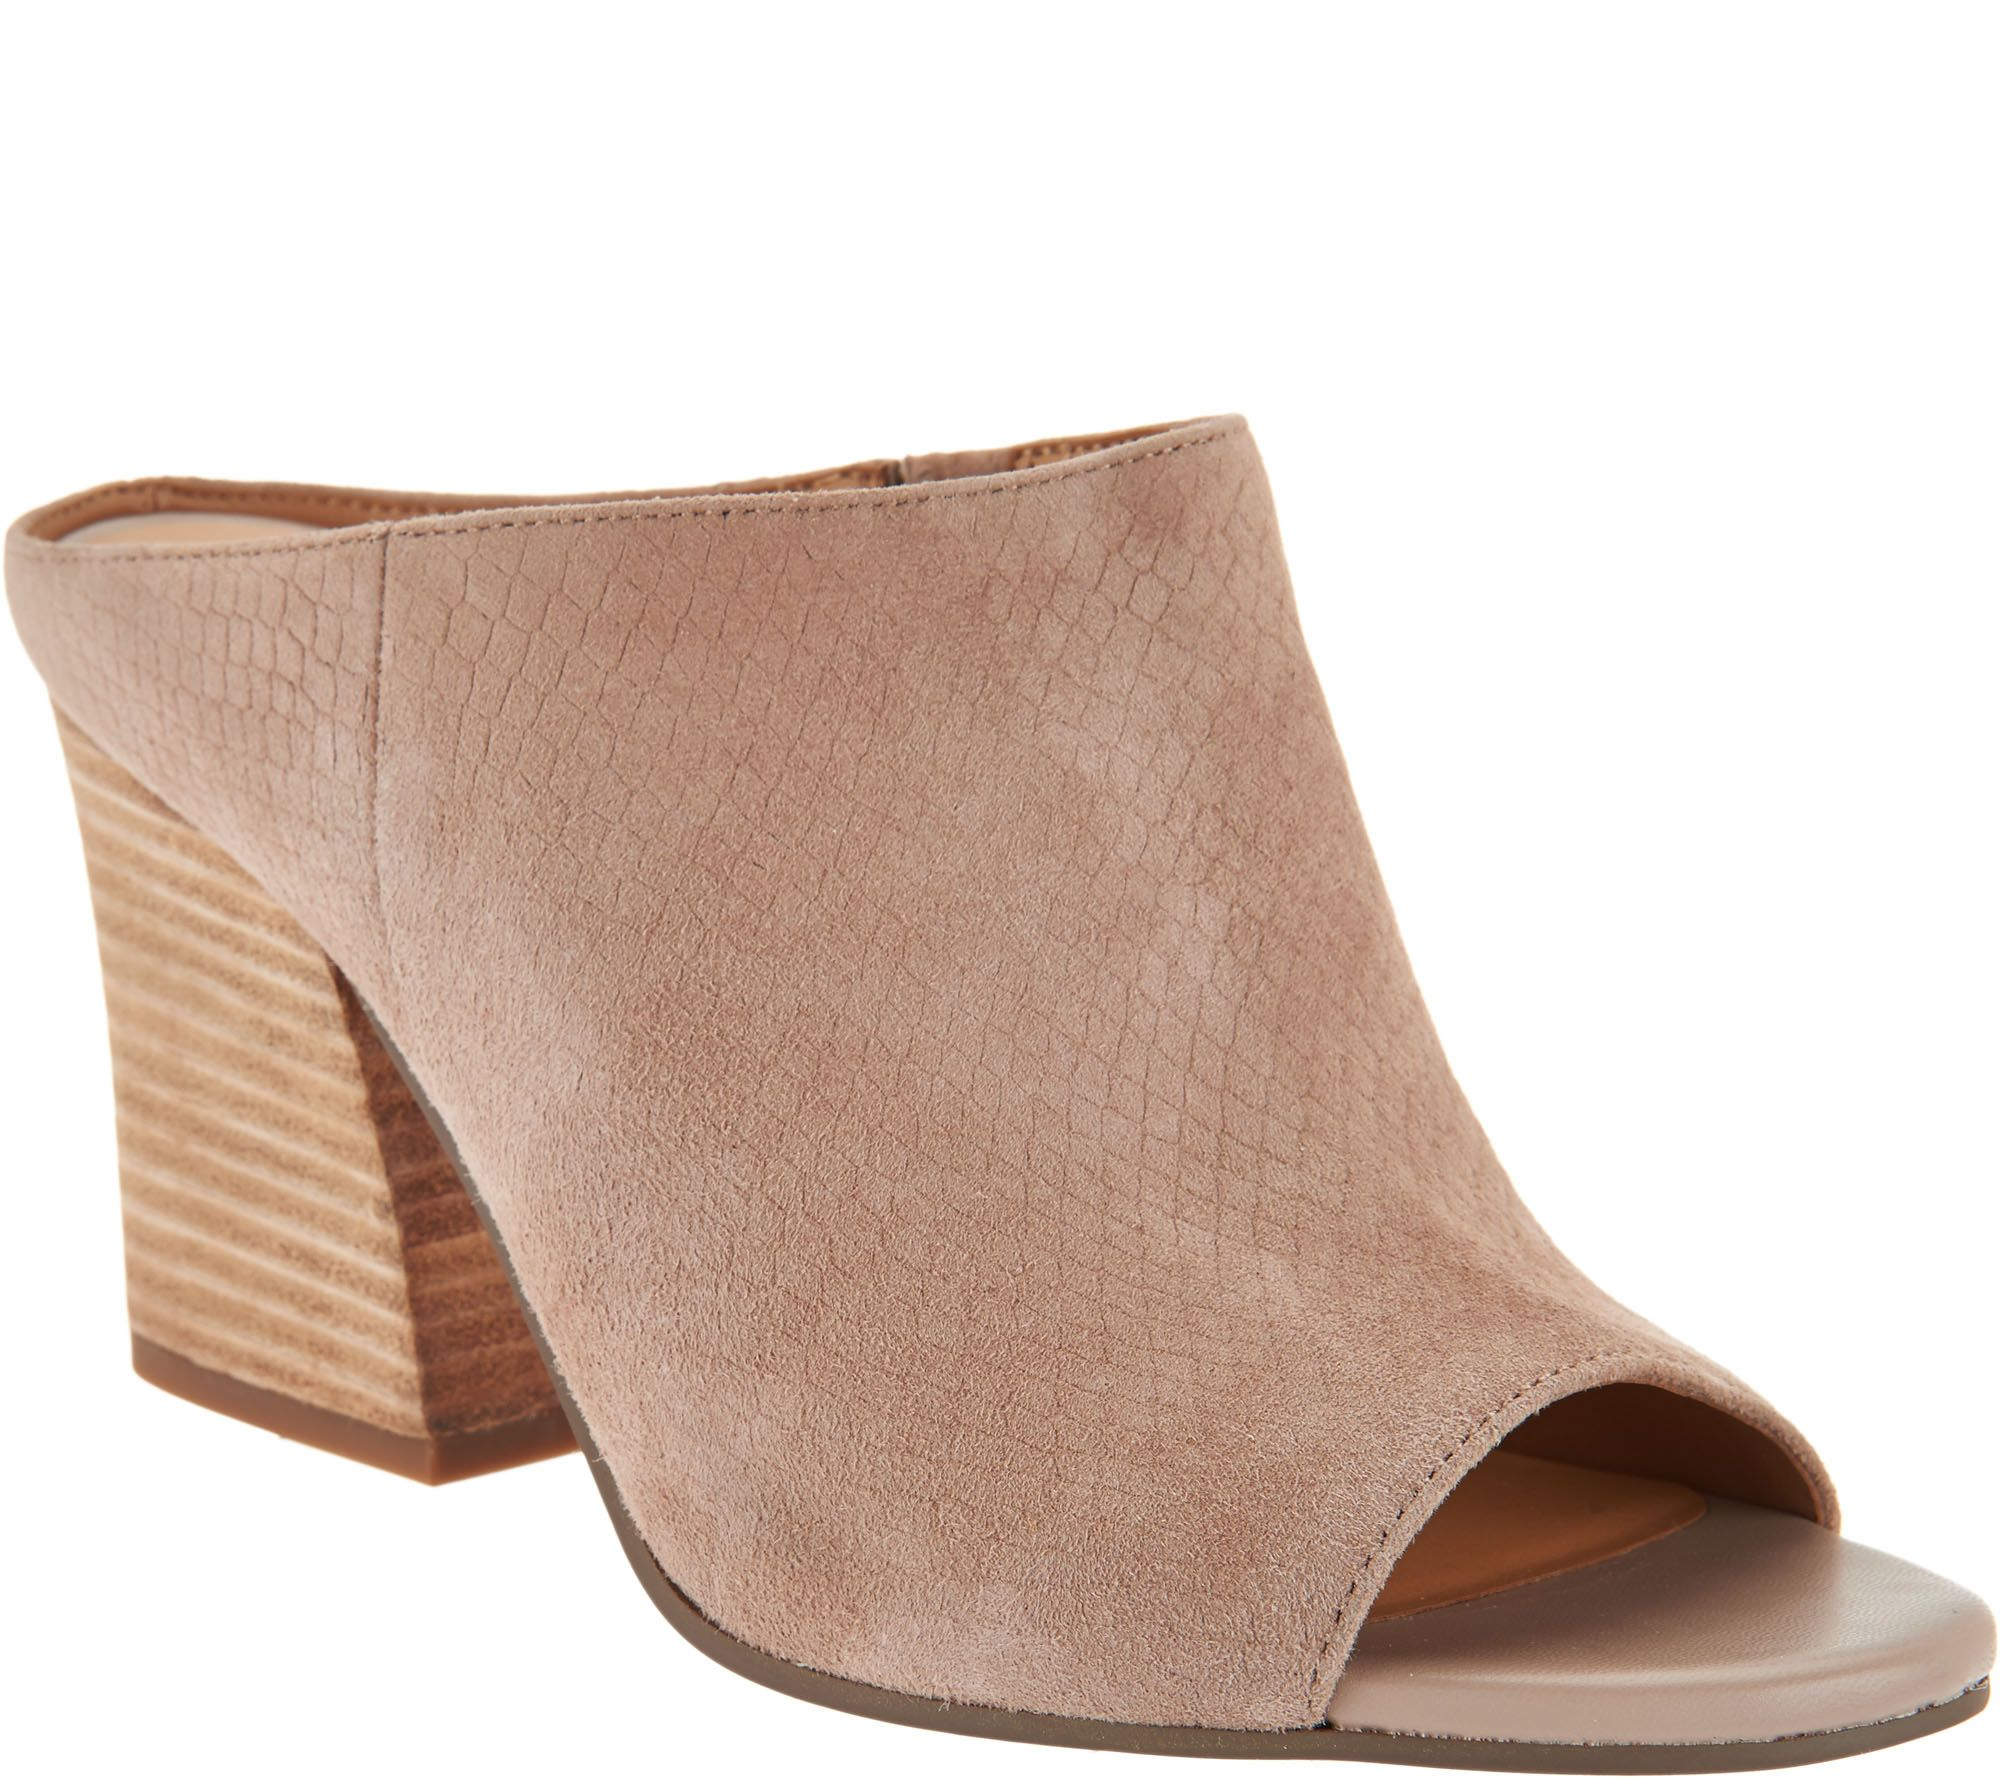 c77fa07785b334 Franco Sarto Snake Textured Suede Peep-toe Mules - Firefly - Page 1 —  QVC.com